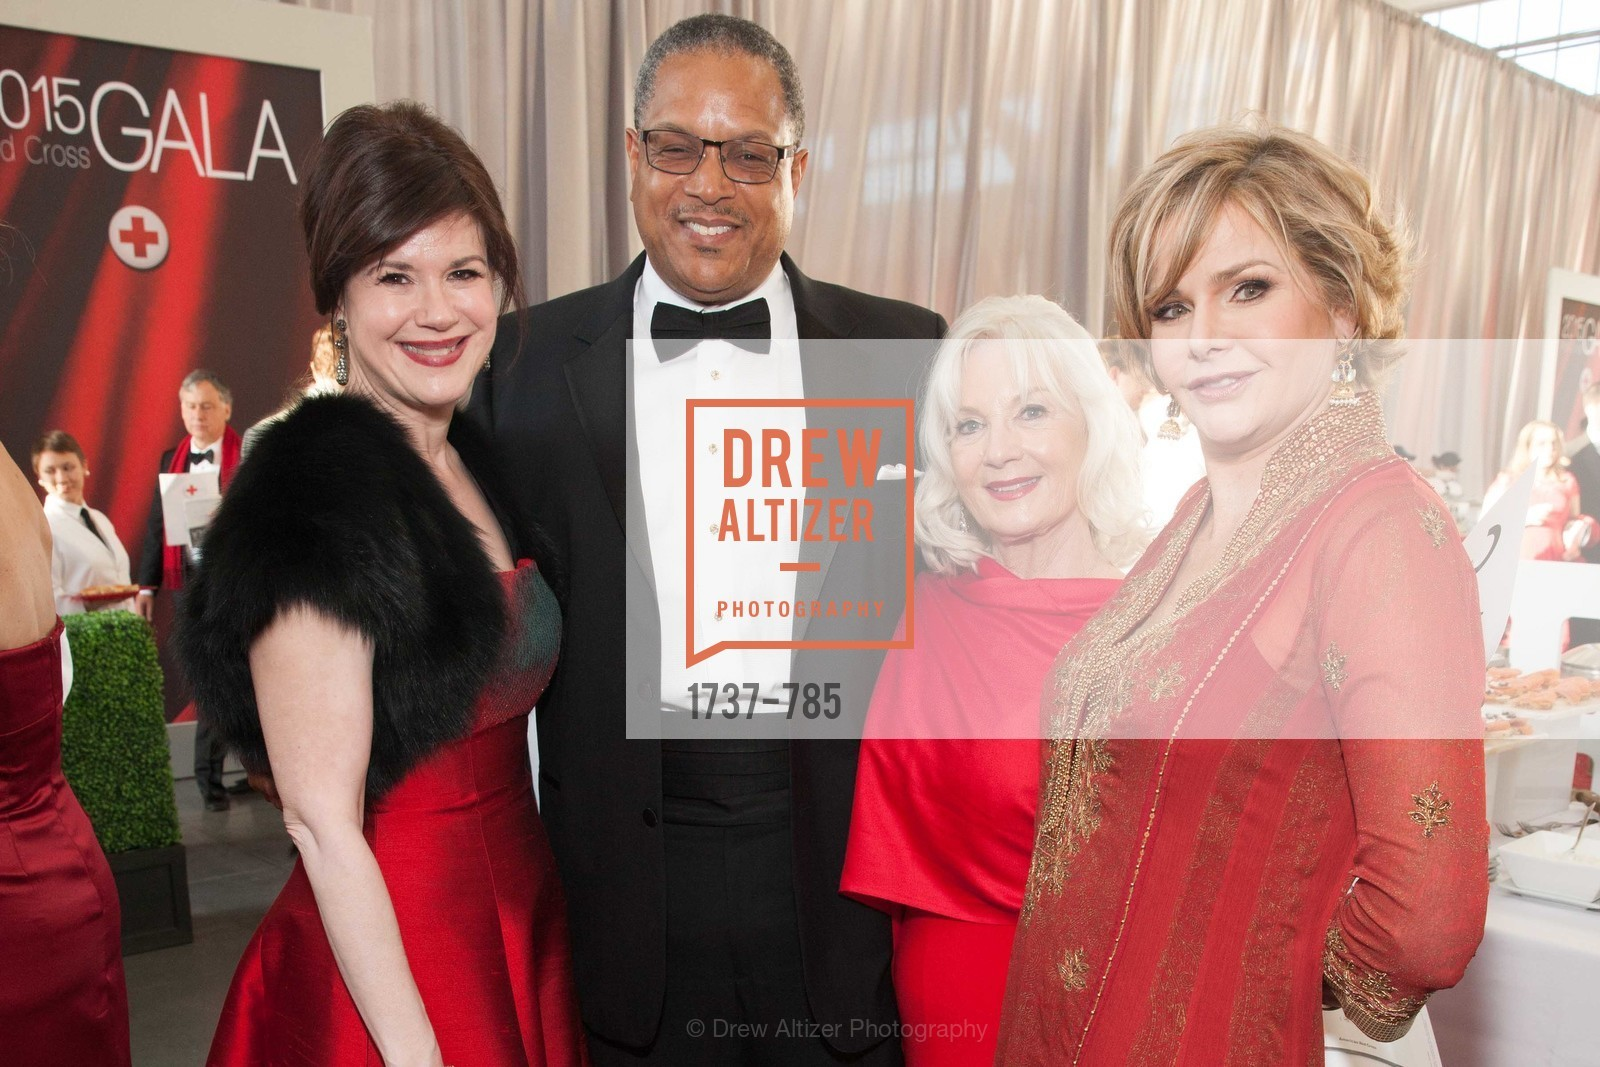 Elaine Mellis, Timothy Alan Simon, Arlene Inch, Deirdre Byrne, 2015 RED CROSS Gala, US, April 12th, 2015,Drew Altizer, Drew Altizer Photography, full-service agency, private events, San Francisco photographer, photographer california